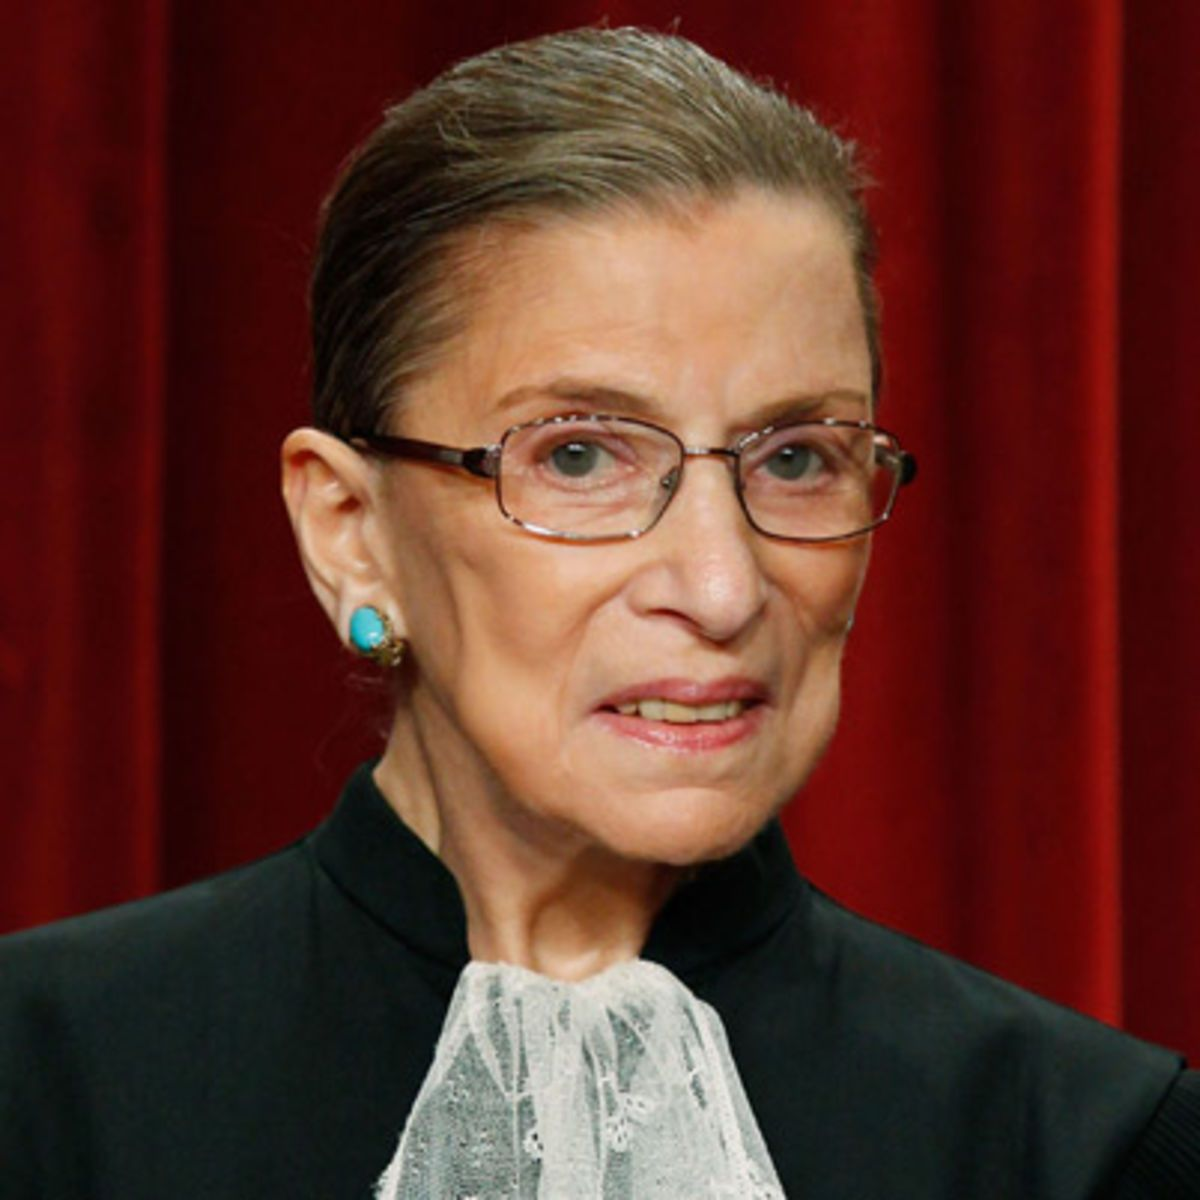 best ideas about justice ruth bader ginsburg 17 best ideas about justice ruth bader ginsburg ruth bader ginsburg ruth bader ginsburg quotes and supreme court